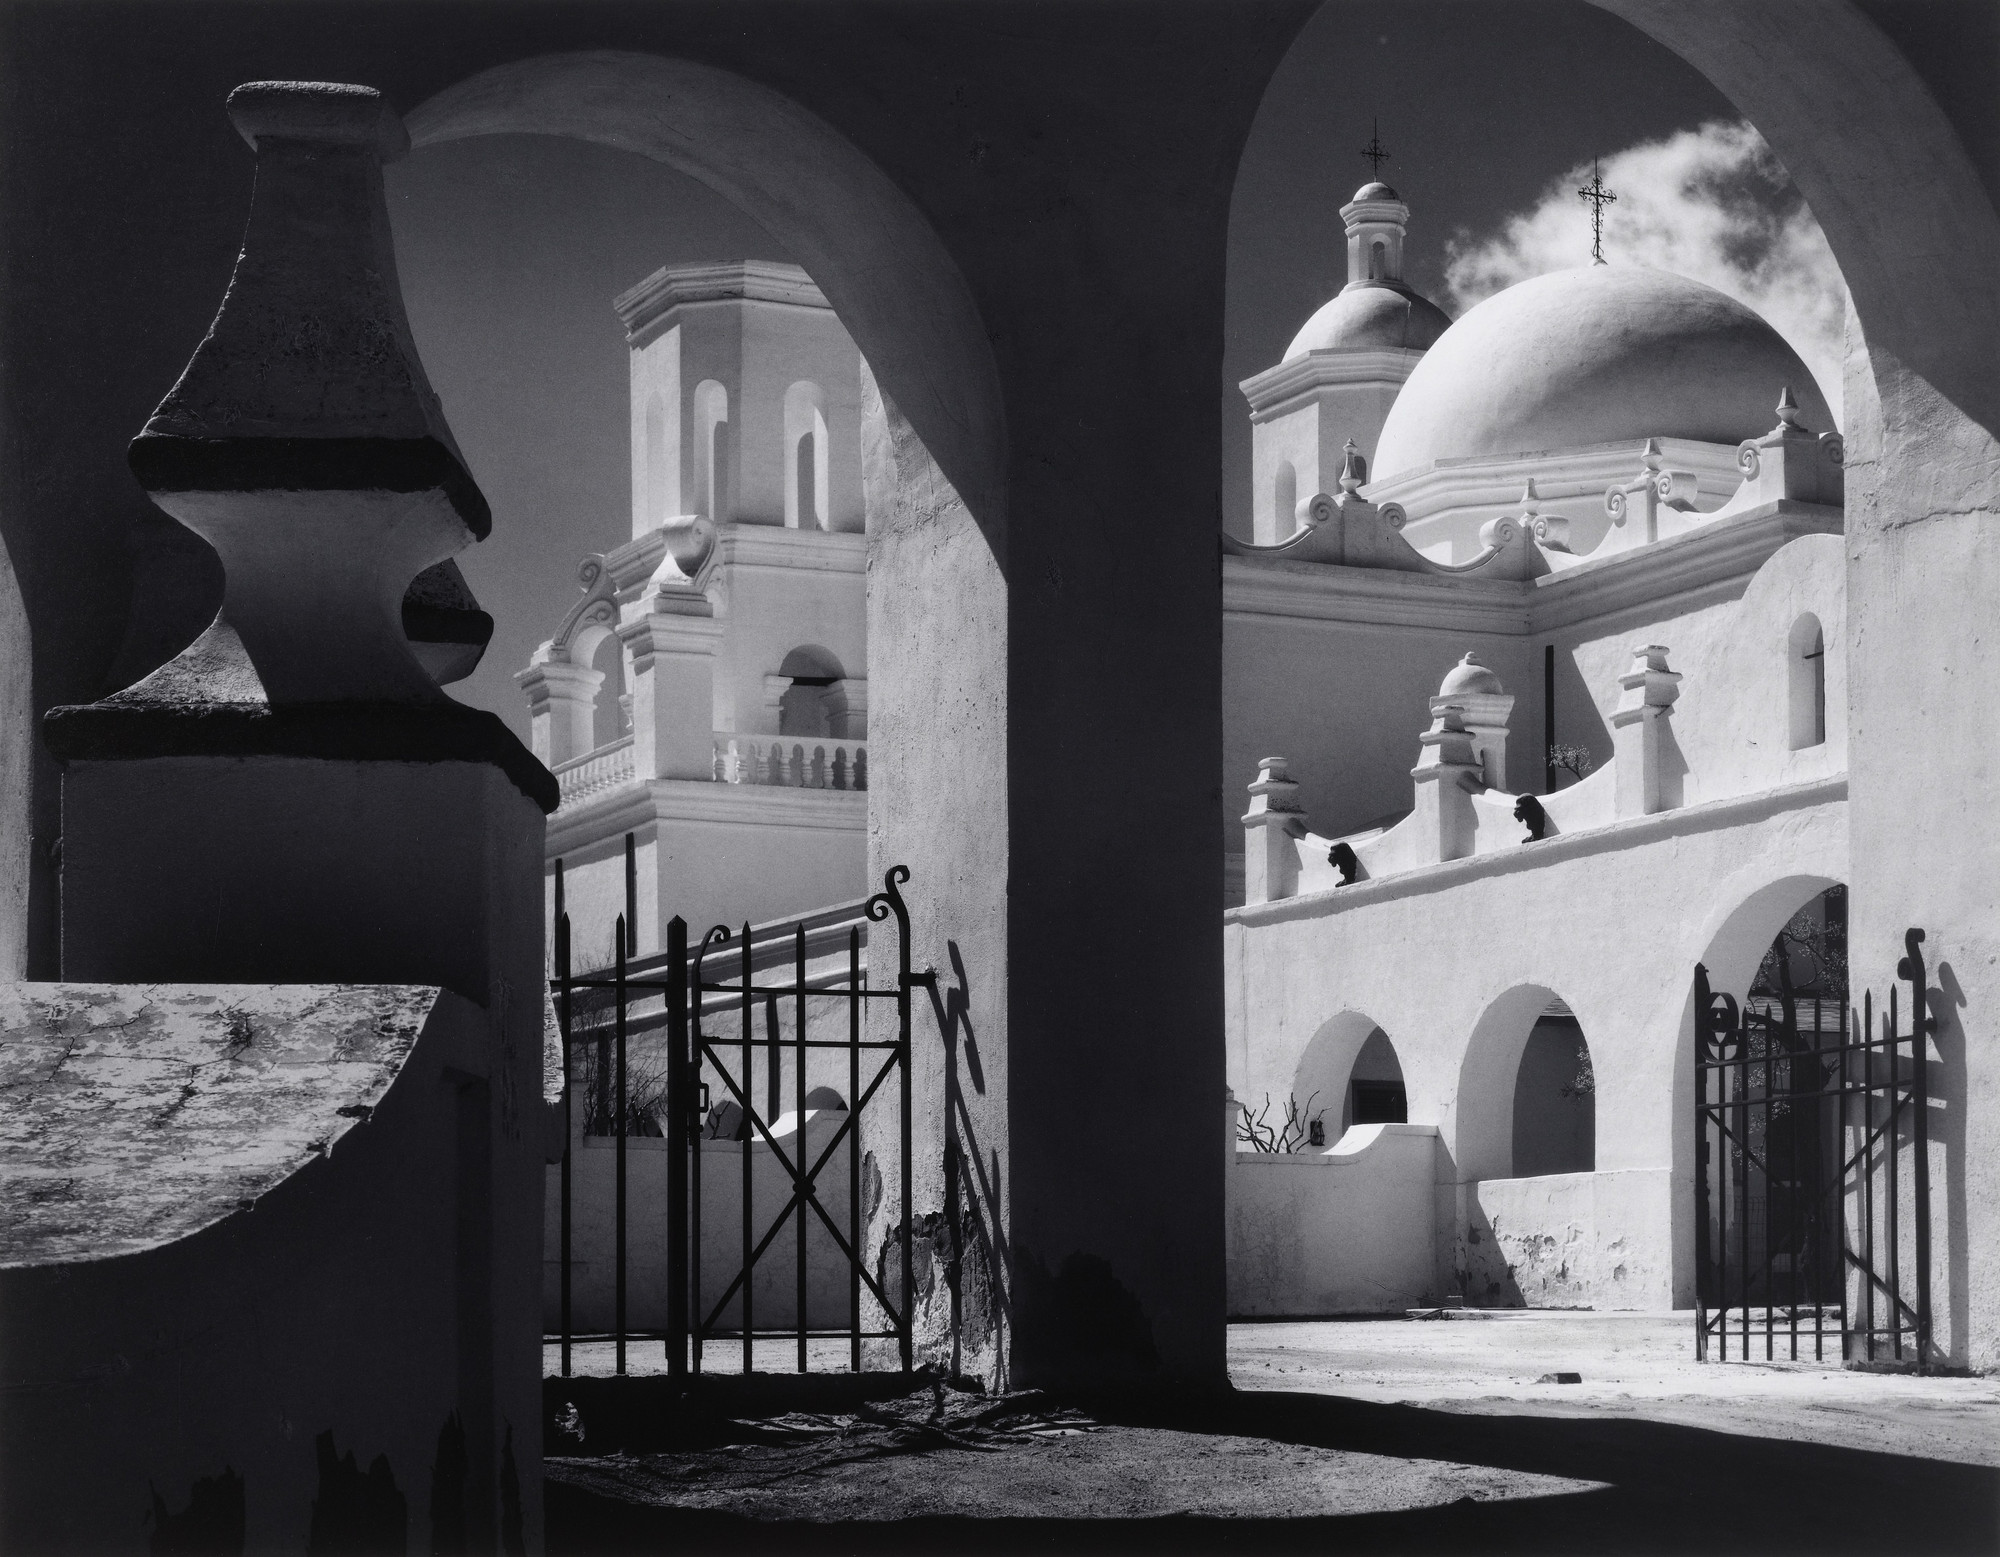 Ansel Adams. Arches, North Court, Mission San Xavier Del Bac, Tucson, Arizona. 1968